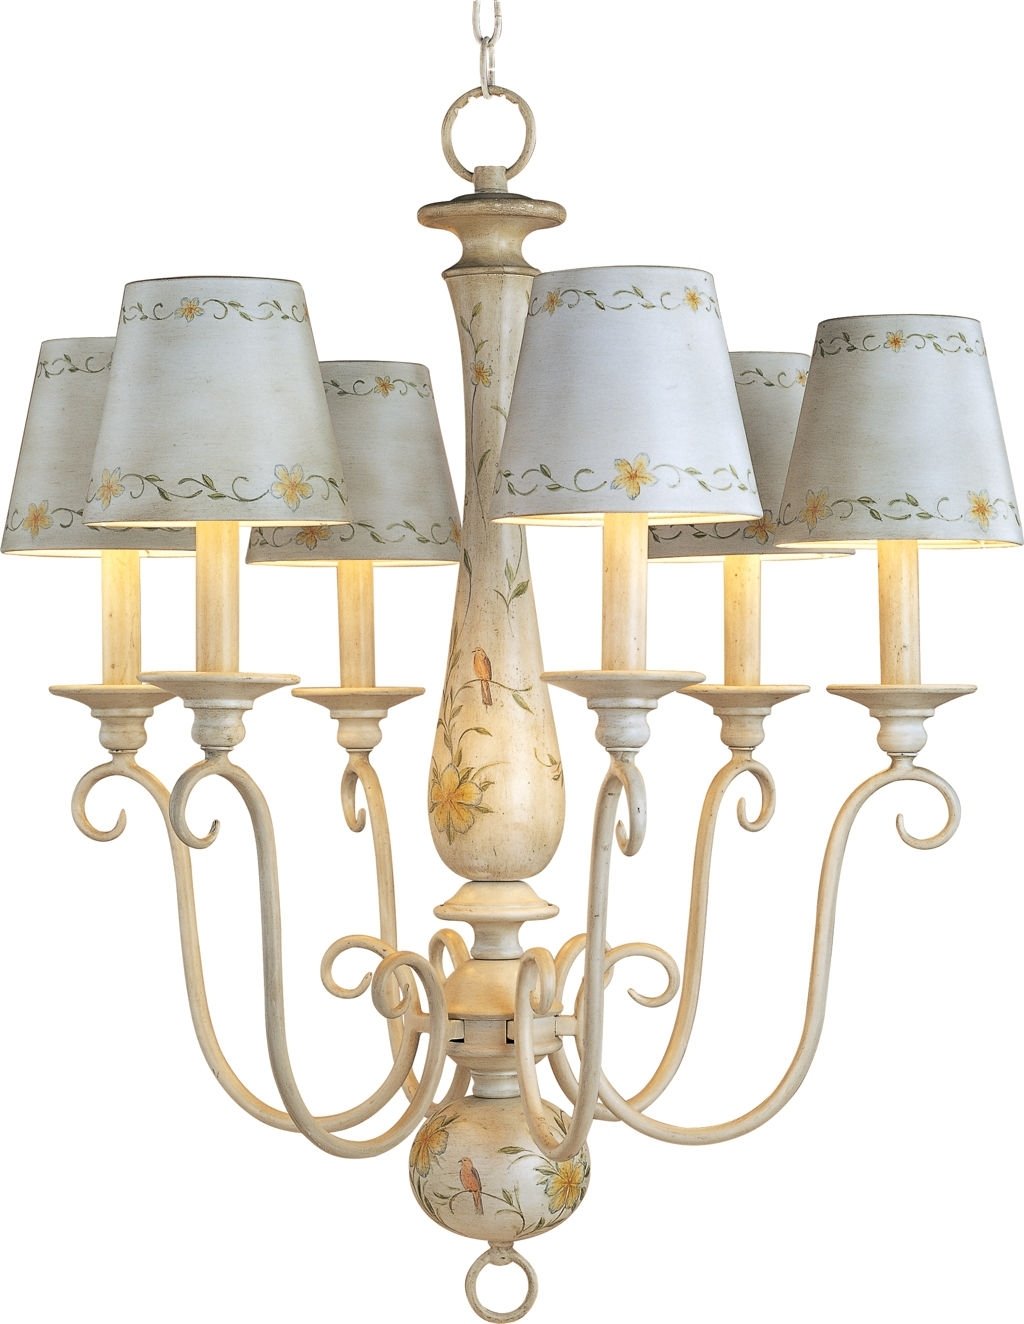 Chandeliers With Lamp Shades Within 2018 Antique French Country Mini Chandelier With Ceramic Lamp Shades And (View 7 of 20)